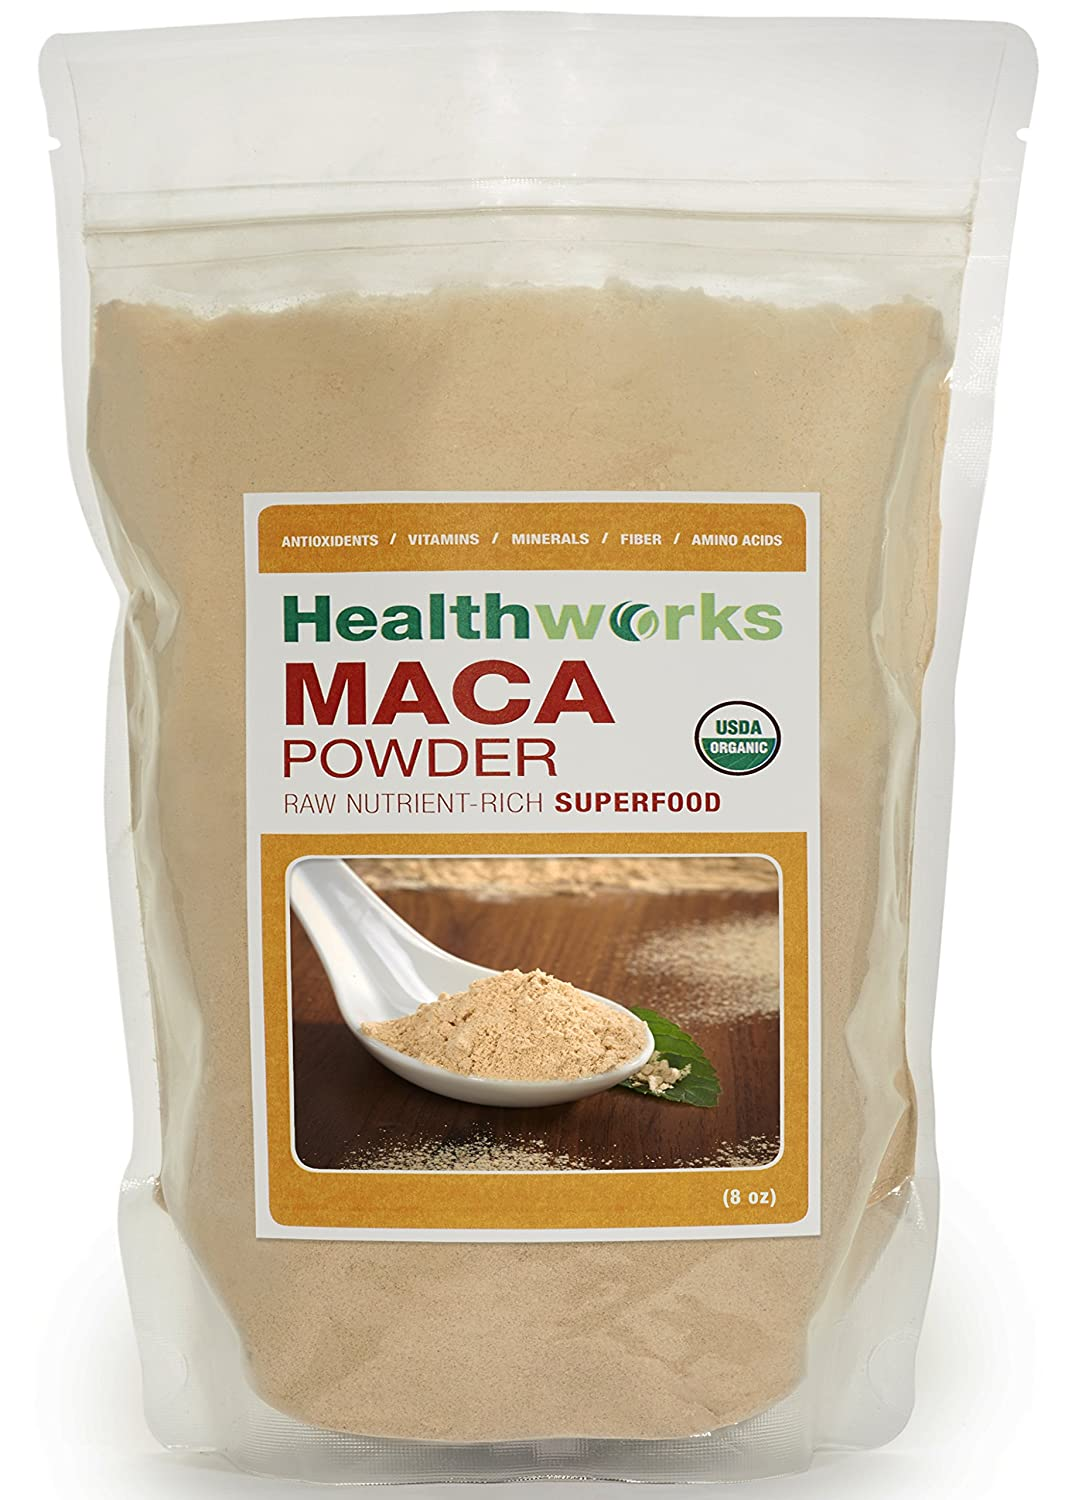 Healthworks Maca Powder Raw Organic, 4lb (2 2lb Packs)